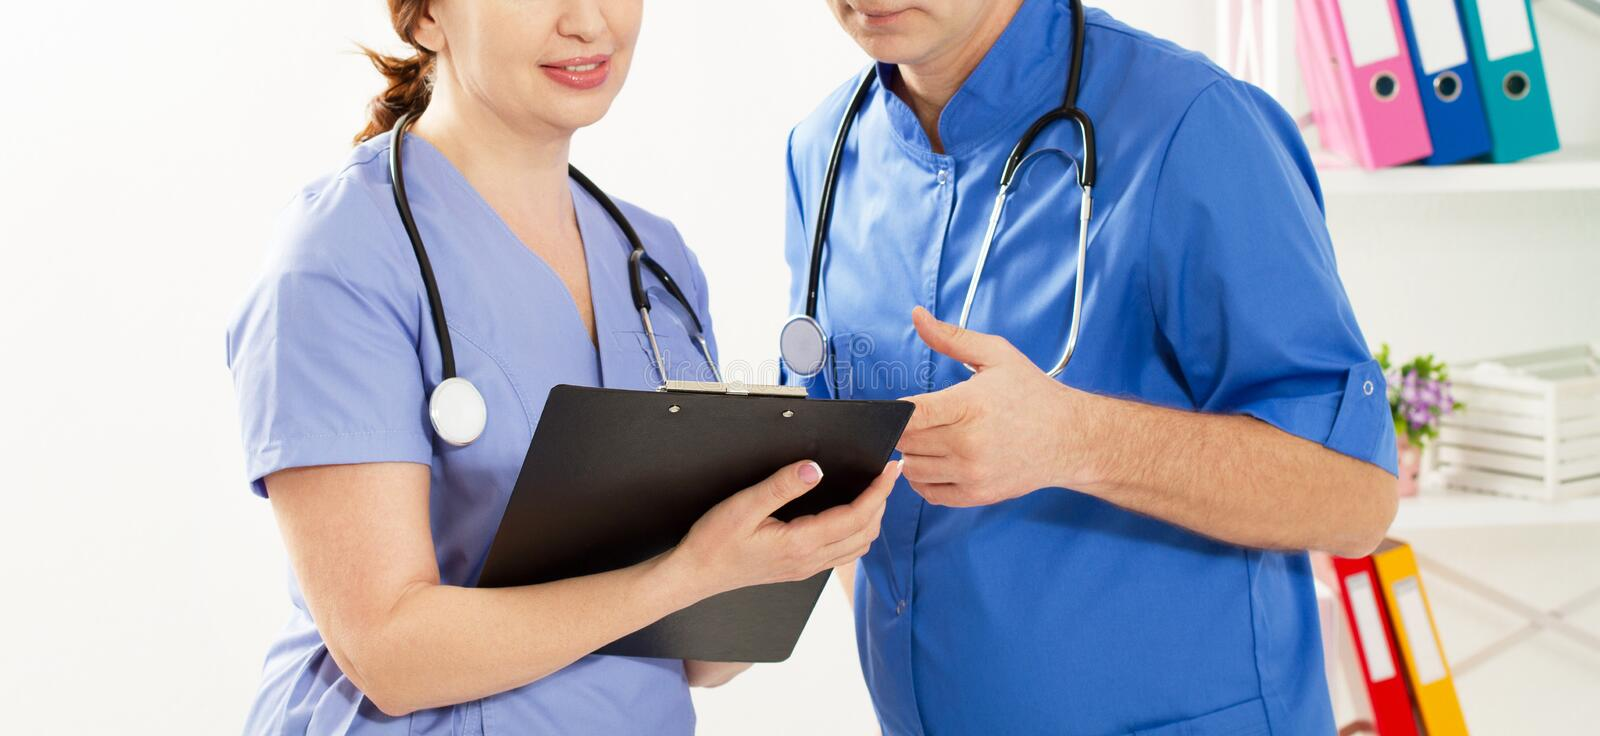 Doctor and nurse discussing something in the clinic. Two doctors in medical office close up image.  royalty free stock photography